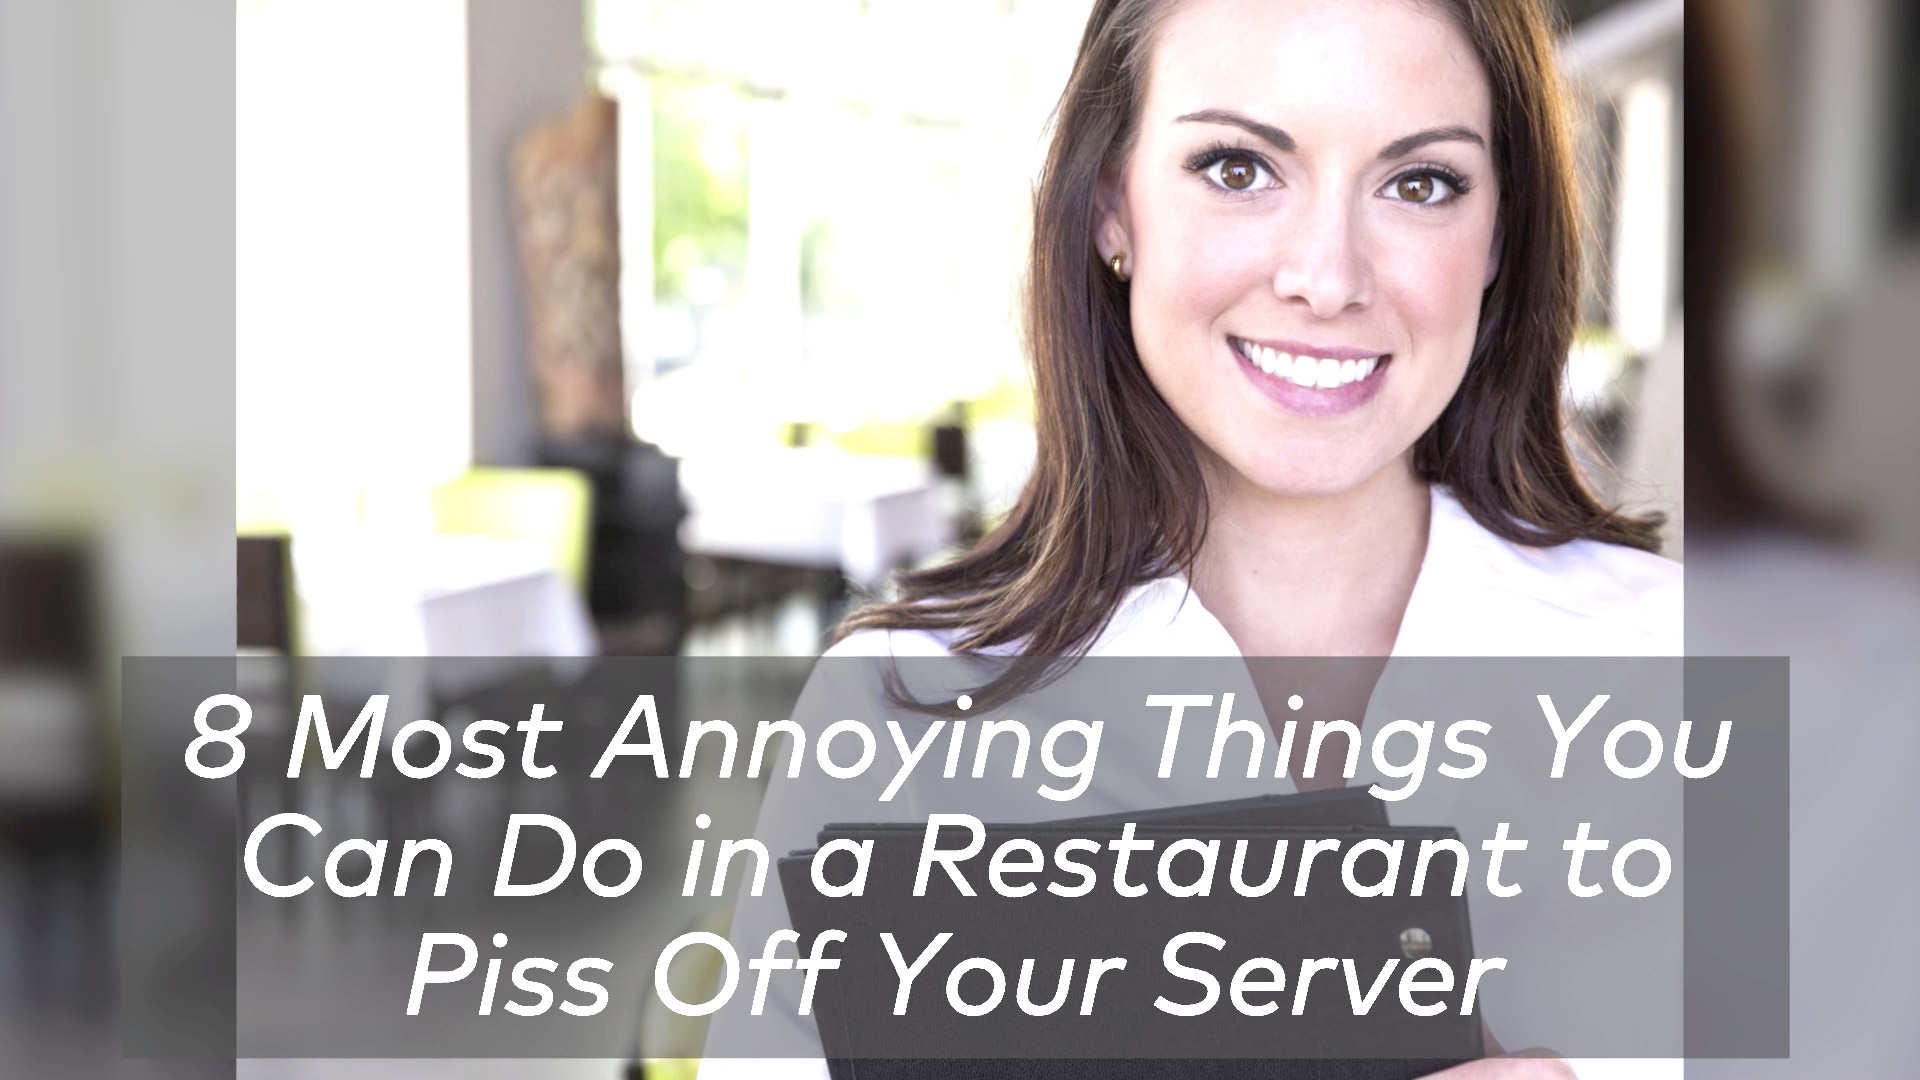 The 7 Most Annoying Things You Can Do in a Restaurant to Piss Off the Chef